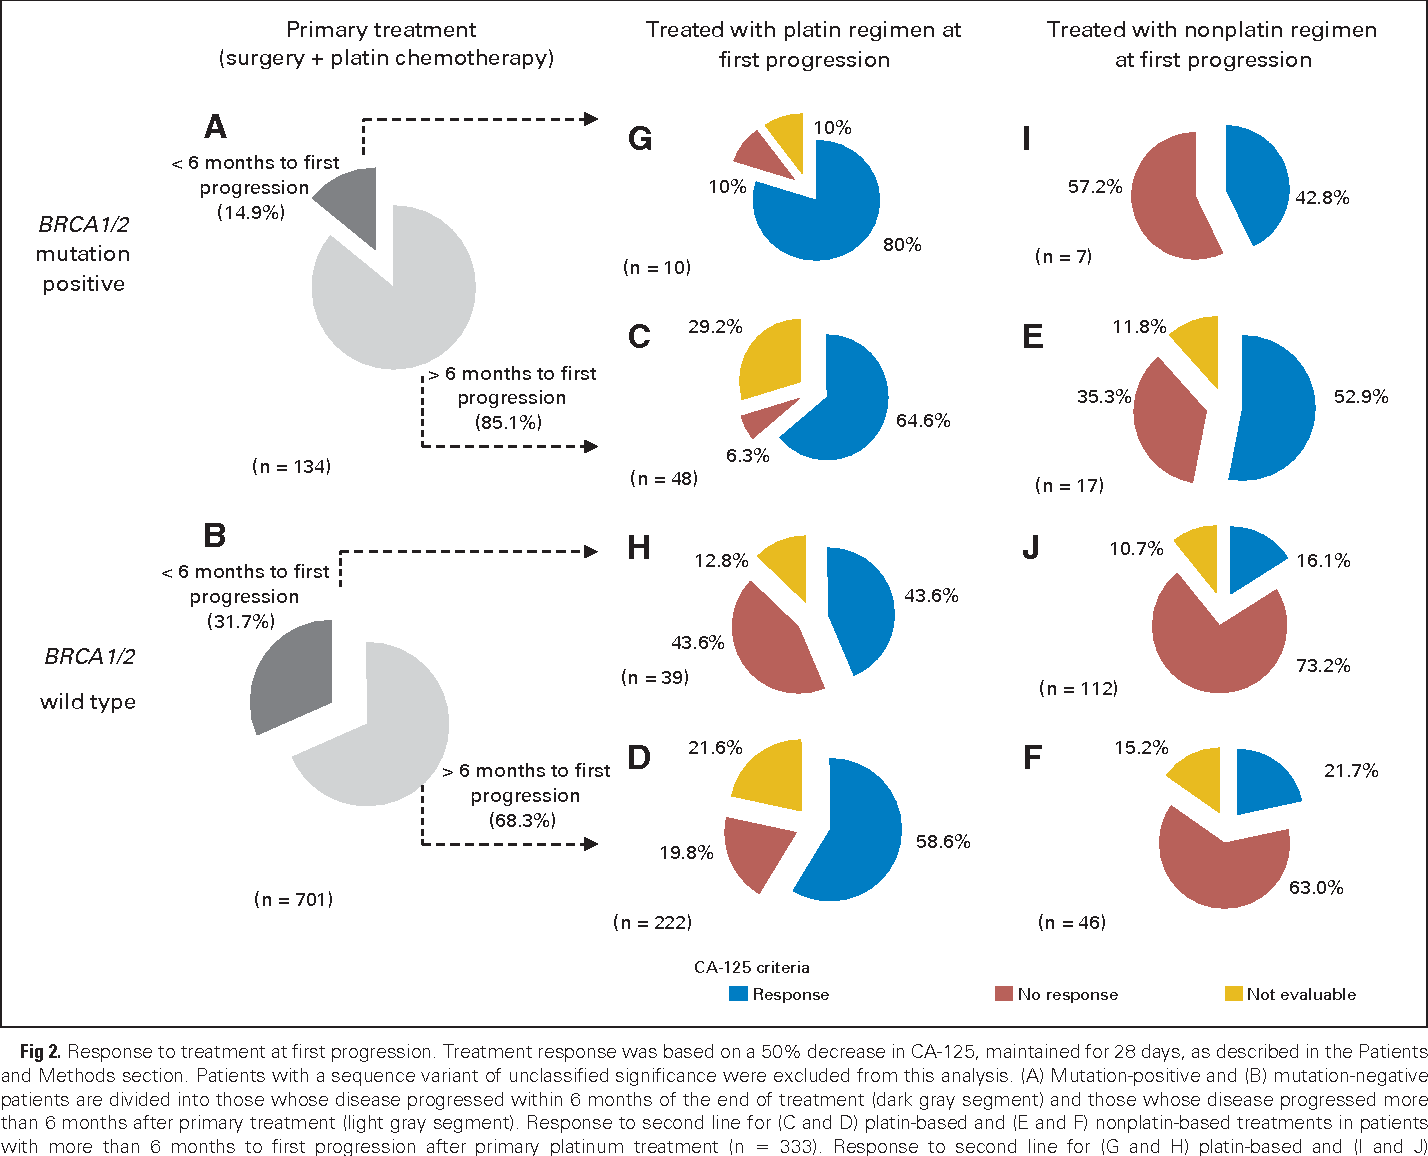 Figure 2 From Brca Mutation Frequency And Patterns Of Treatment Response In Brca Mutation Positive Women With Ovarian Cancer A Report From The Australian Ovarian Cancer Study Group Semantic Scholar